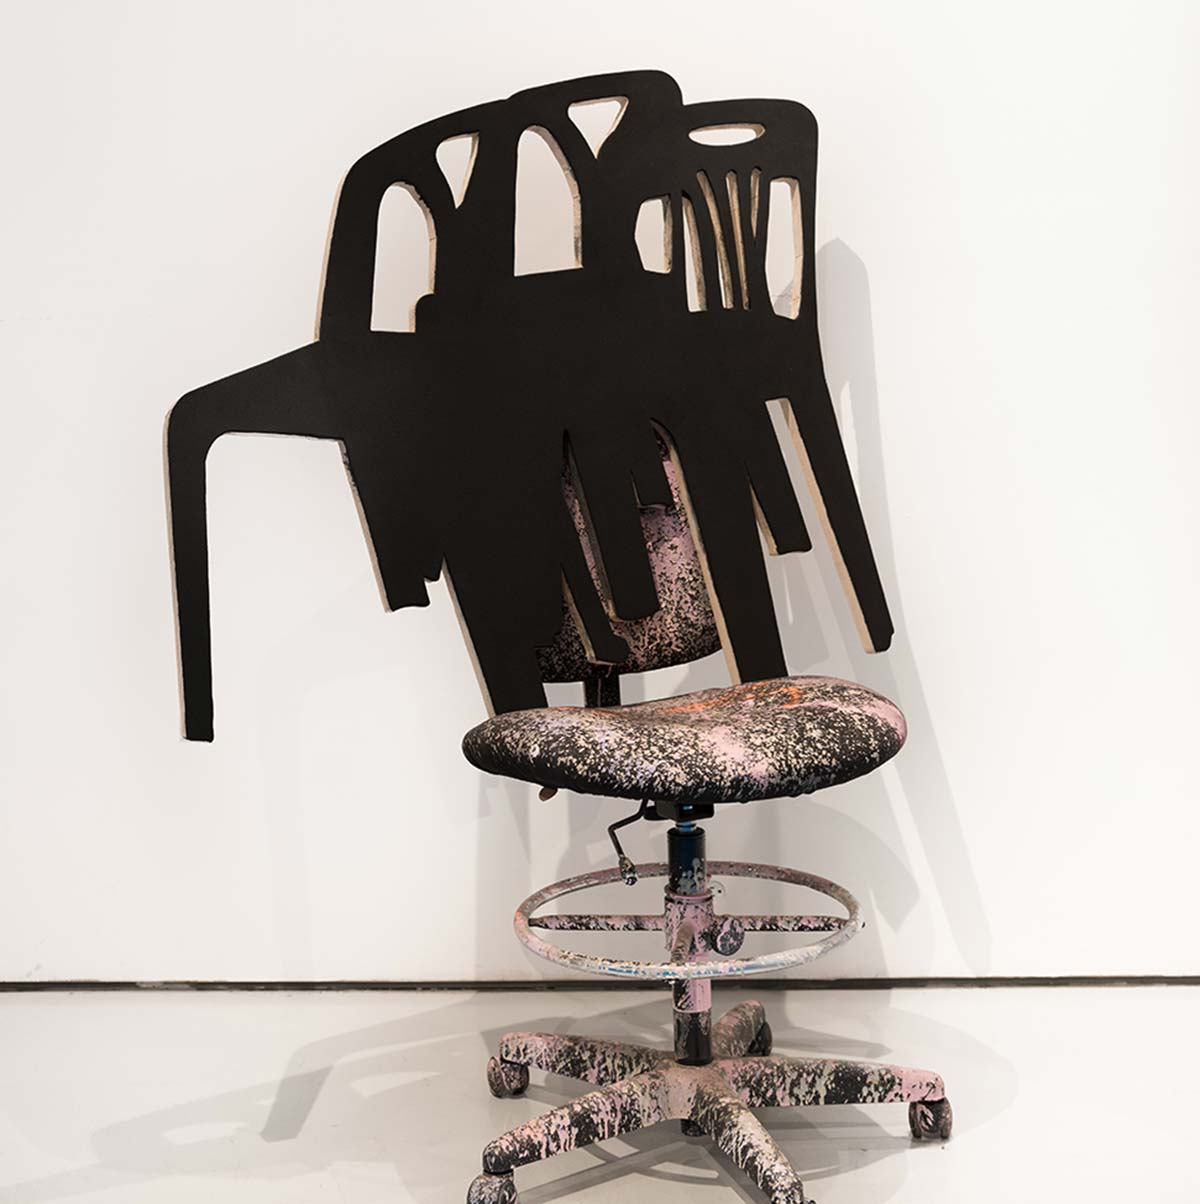 Chairs Beyond Right & Wrong by Raquel Cayre, Tribeca